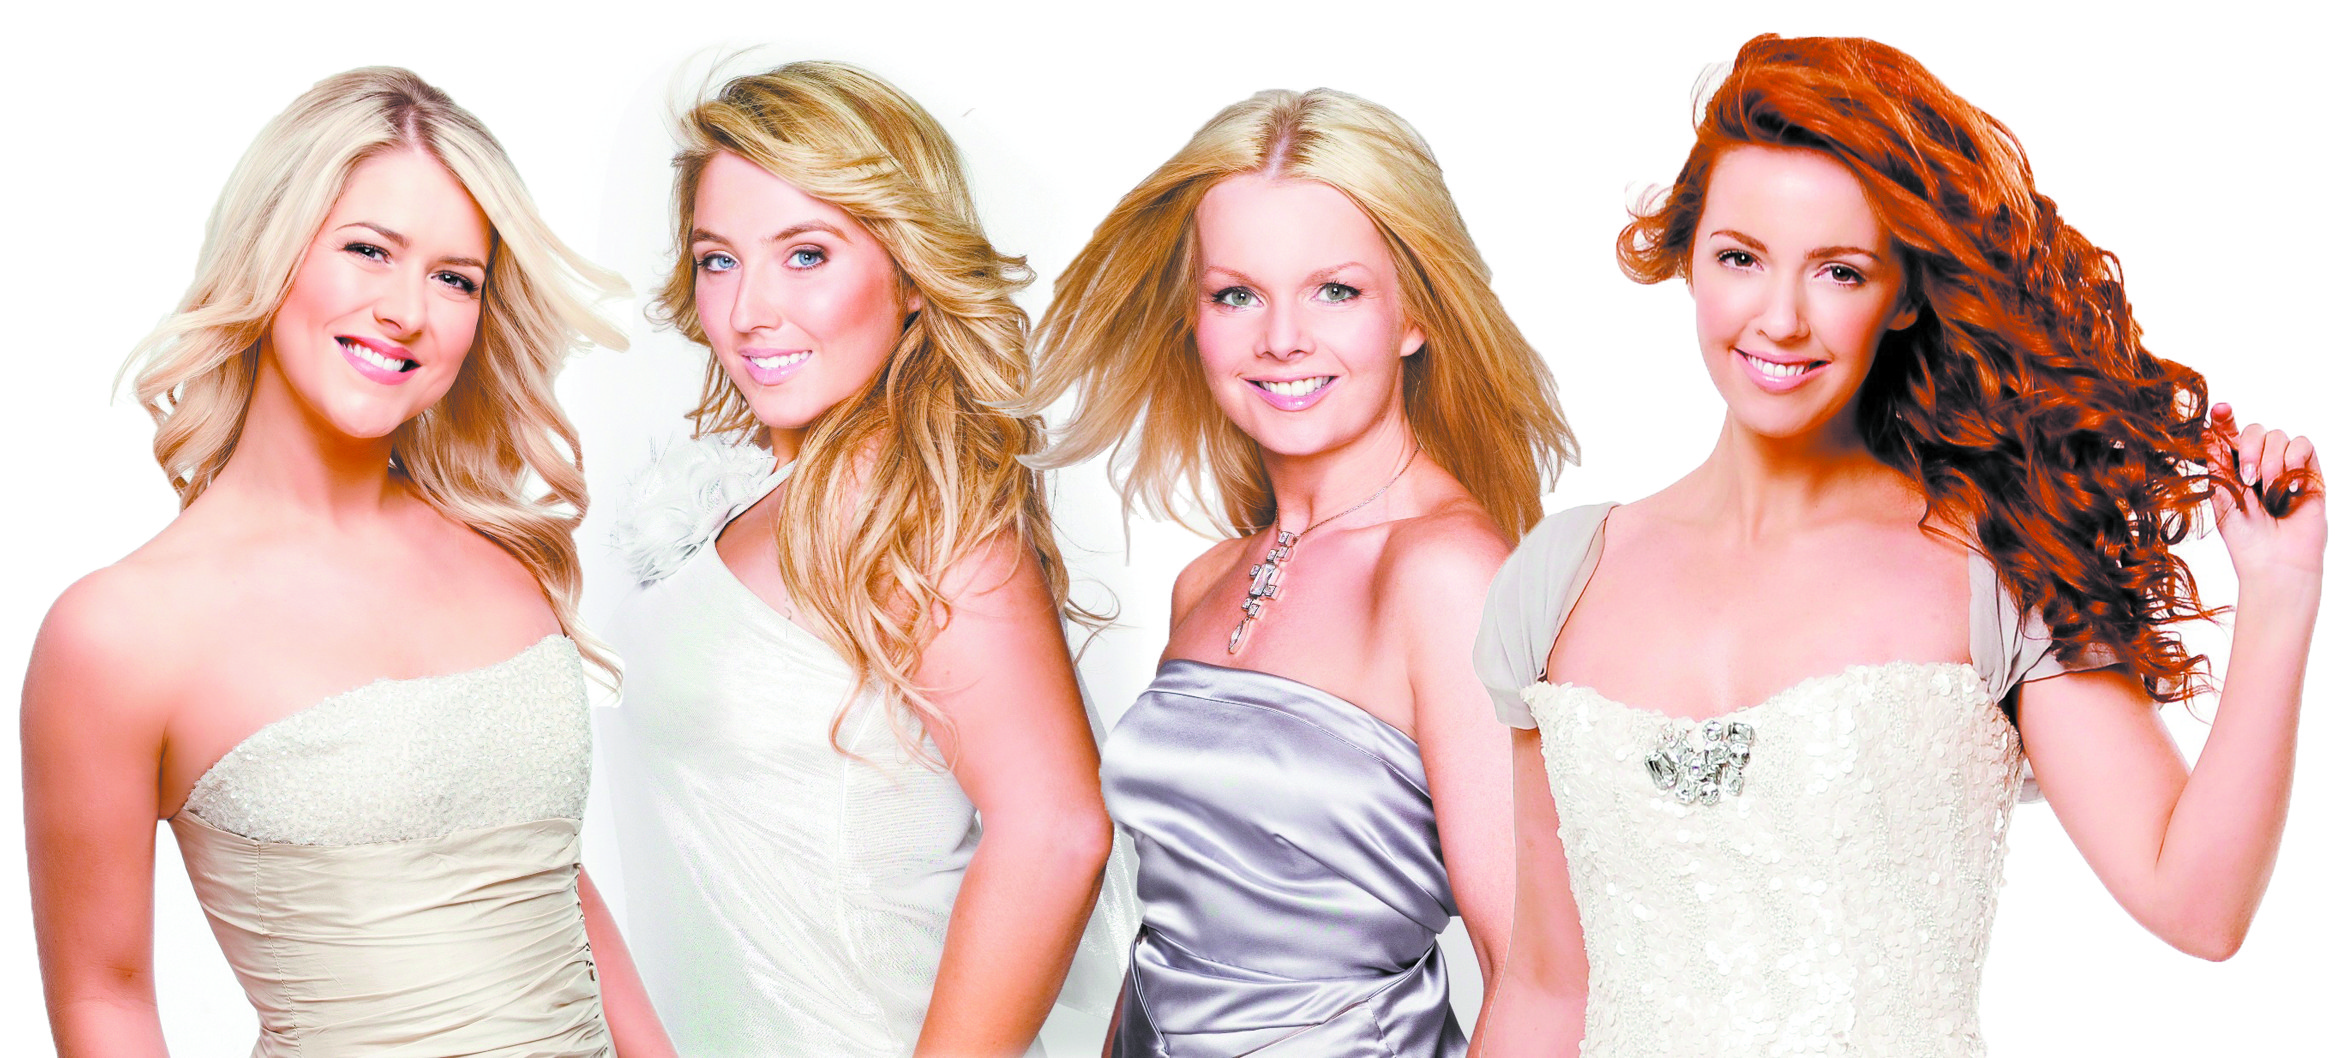 celtic women Celtic woman tuesday, june 12, 2018 7:00 pm on a winter's night in dublin 14 years agoan idea to create a musical show with exceptional talent.